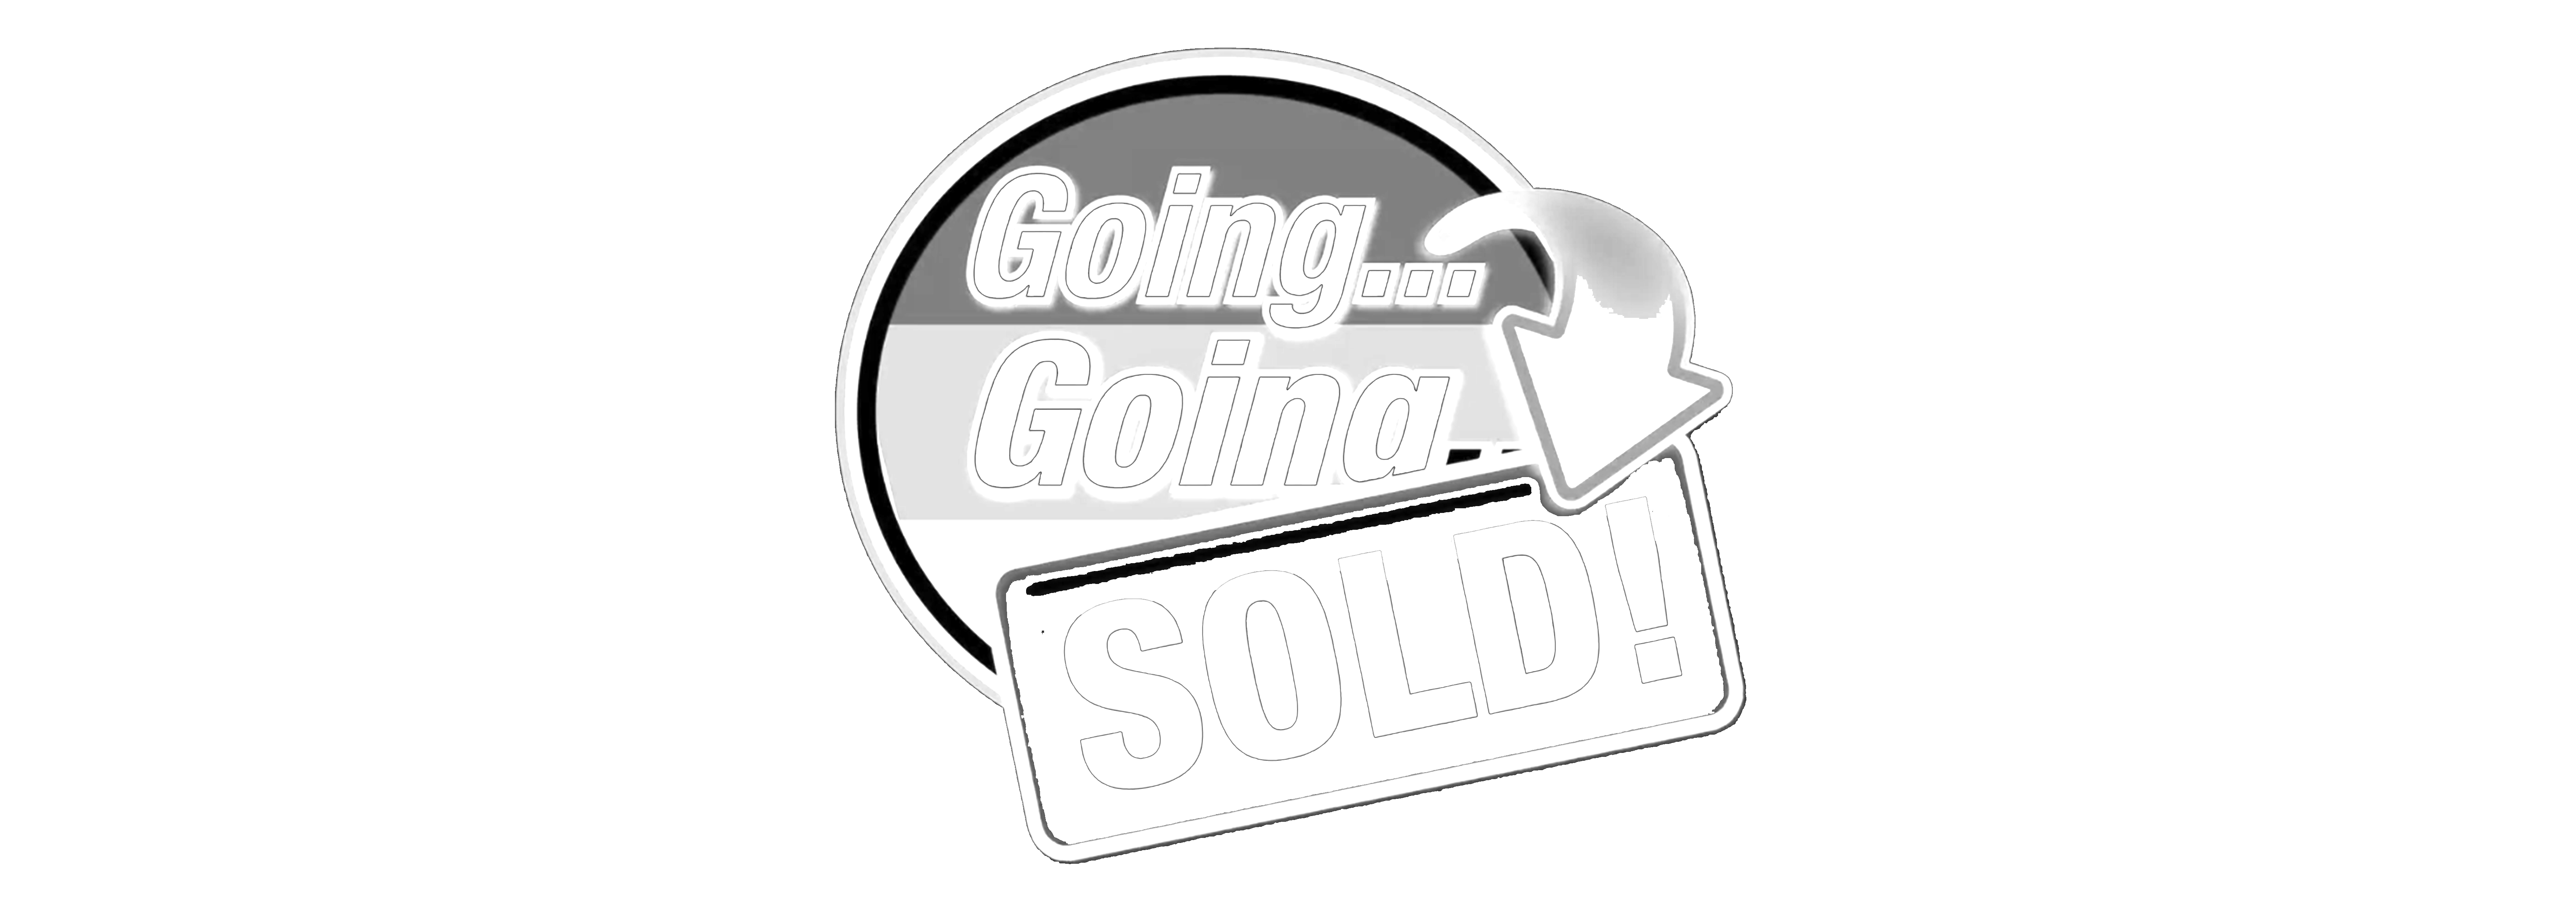 Going going sold graphic